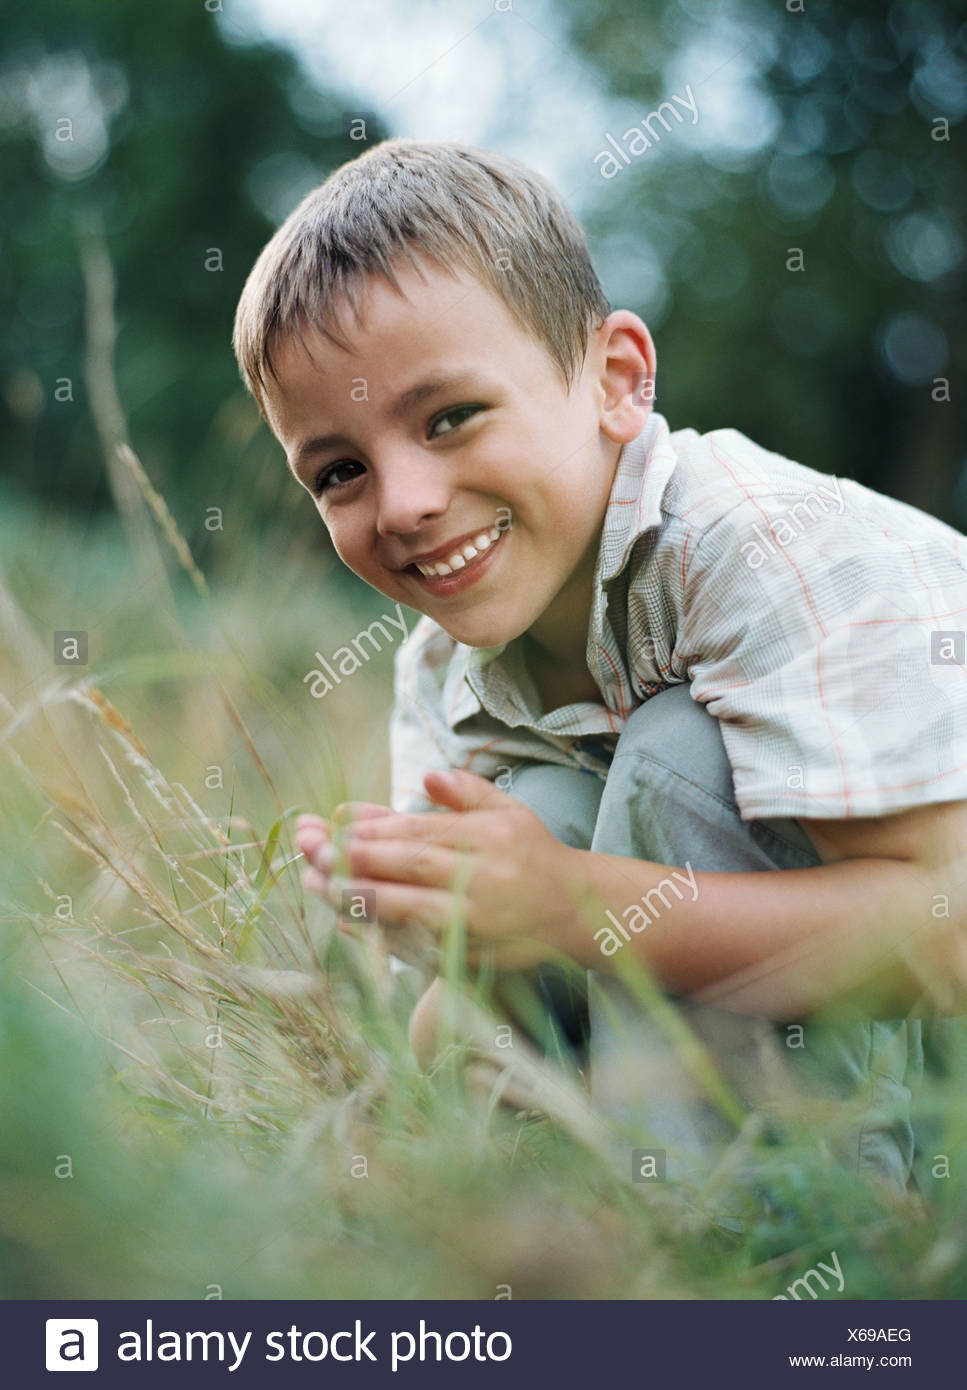 Boy crouching in grass - Stock Image